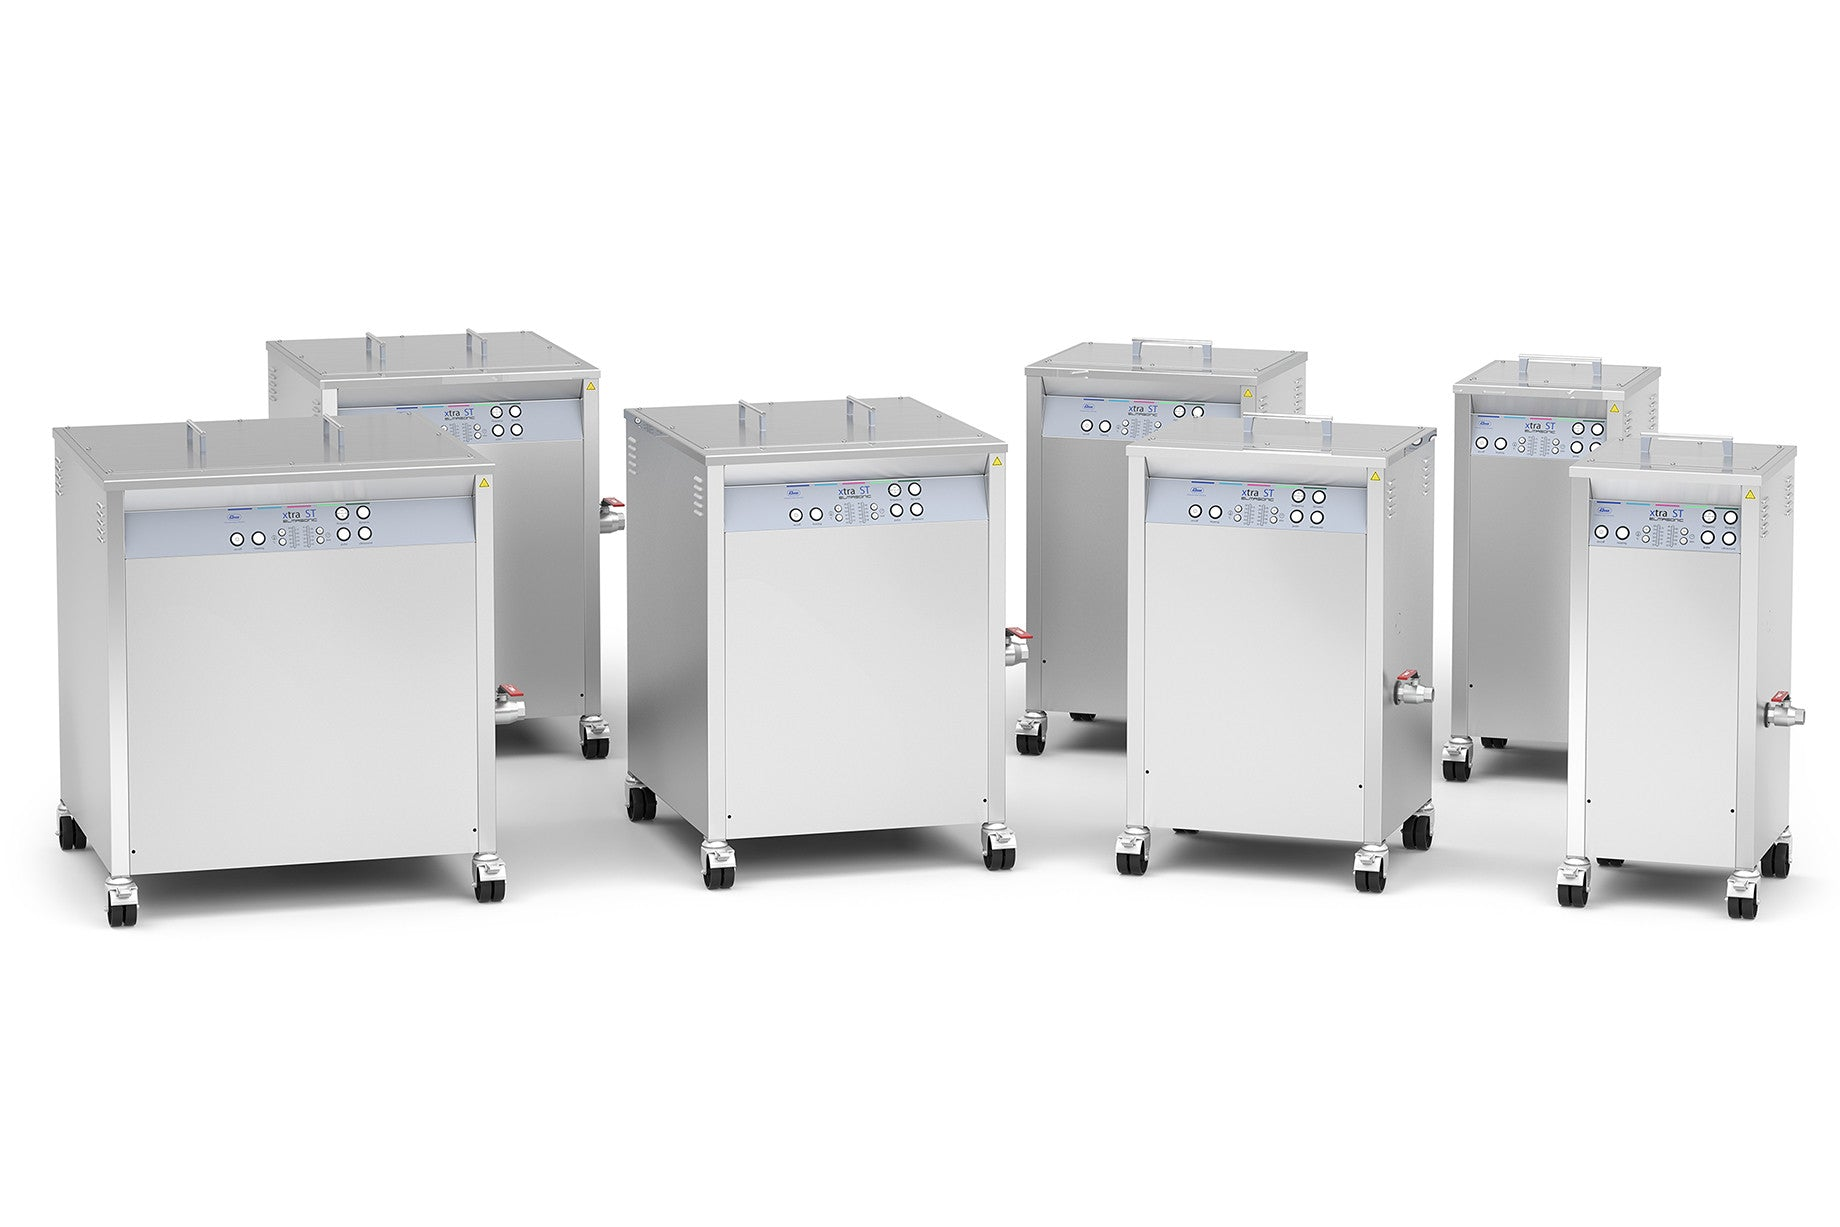 Elmasonic ST ultrasonic industrial cleaners